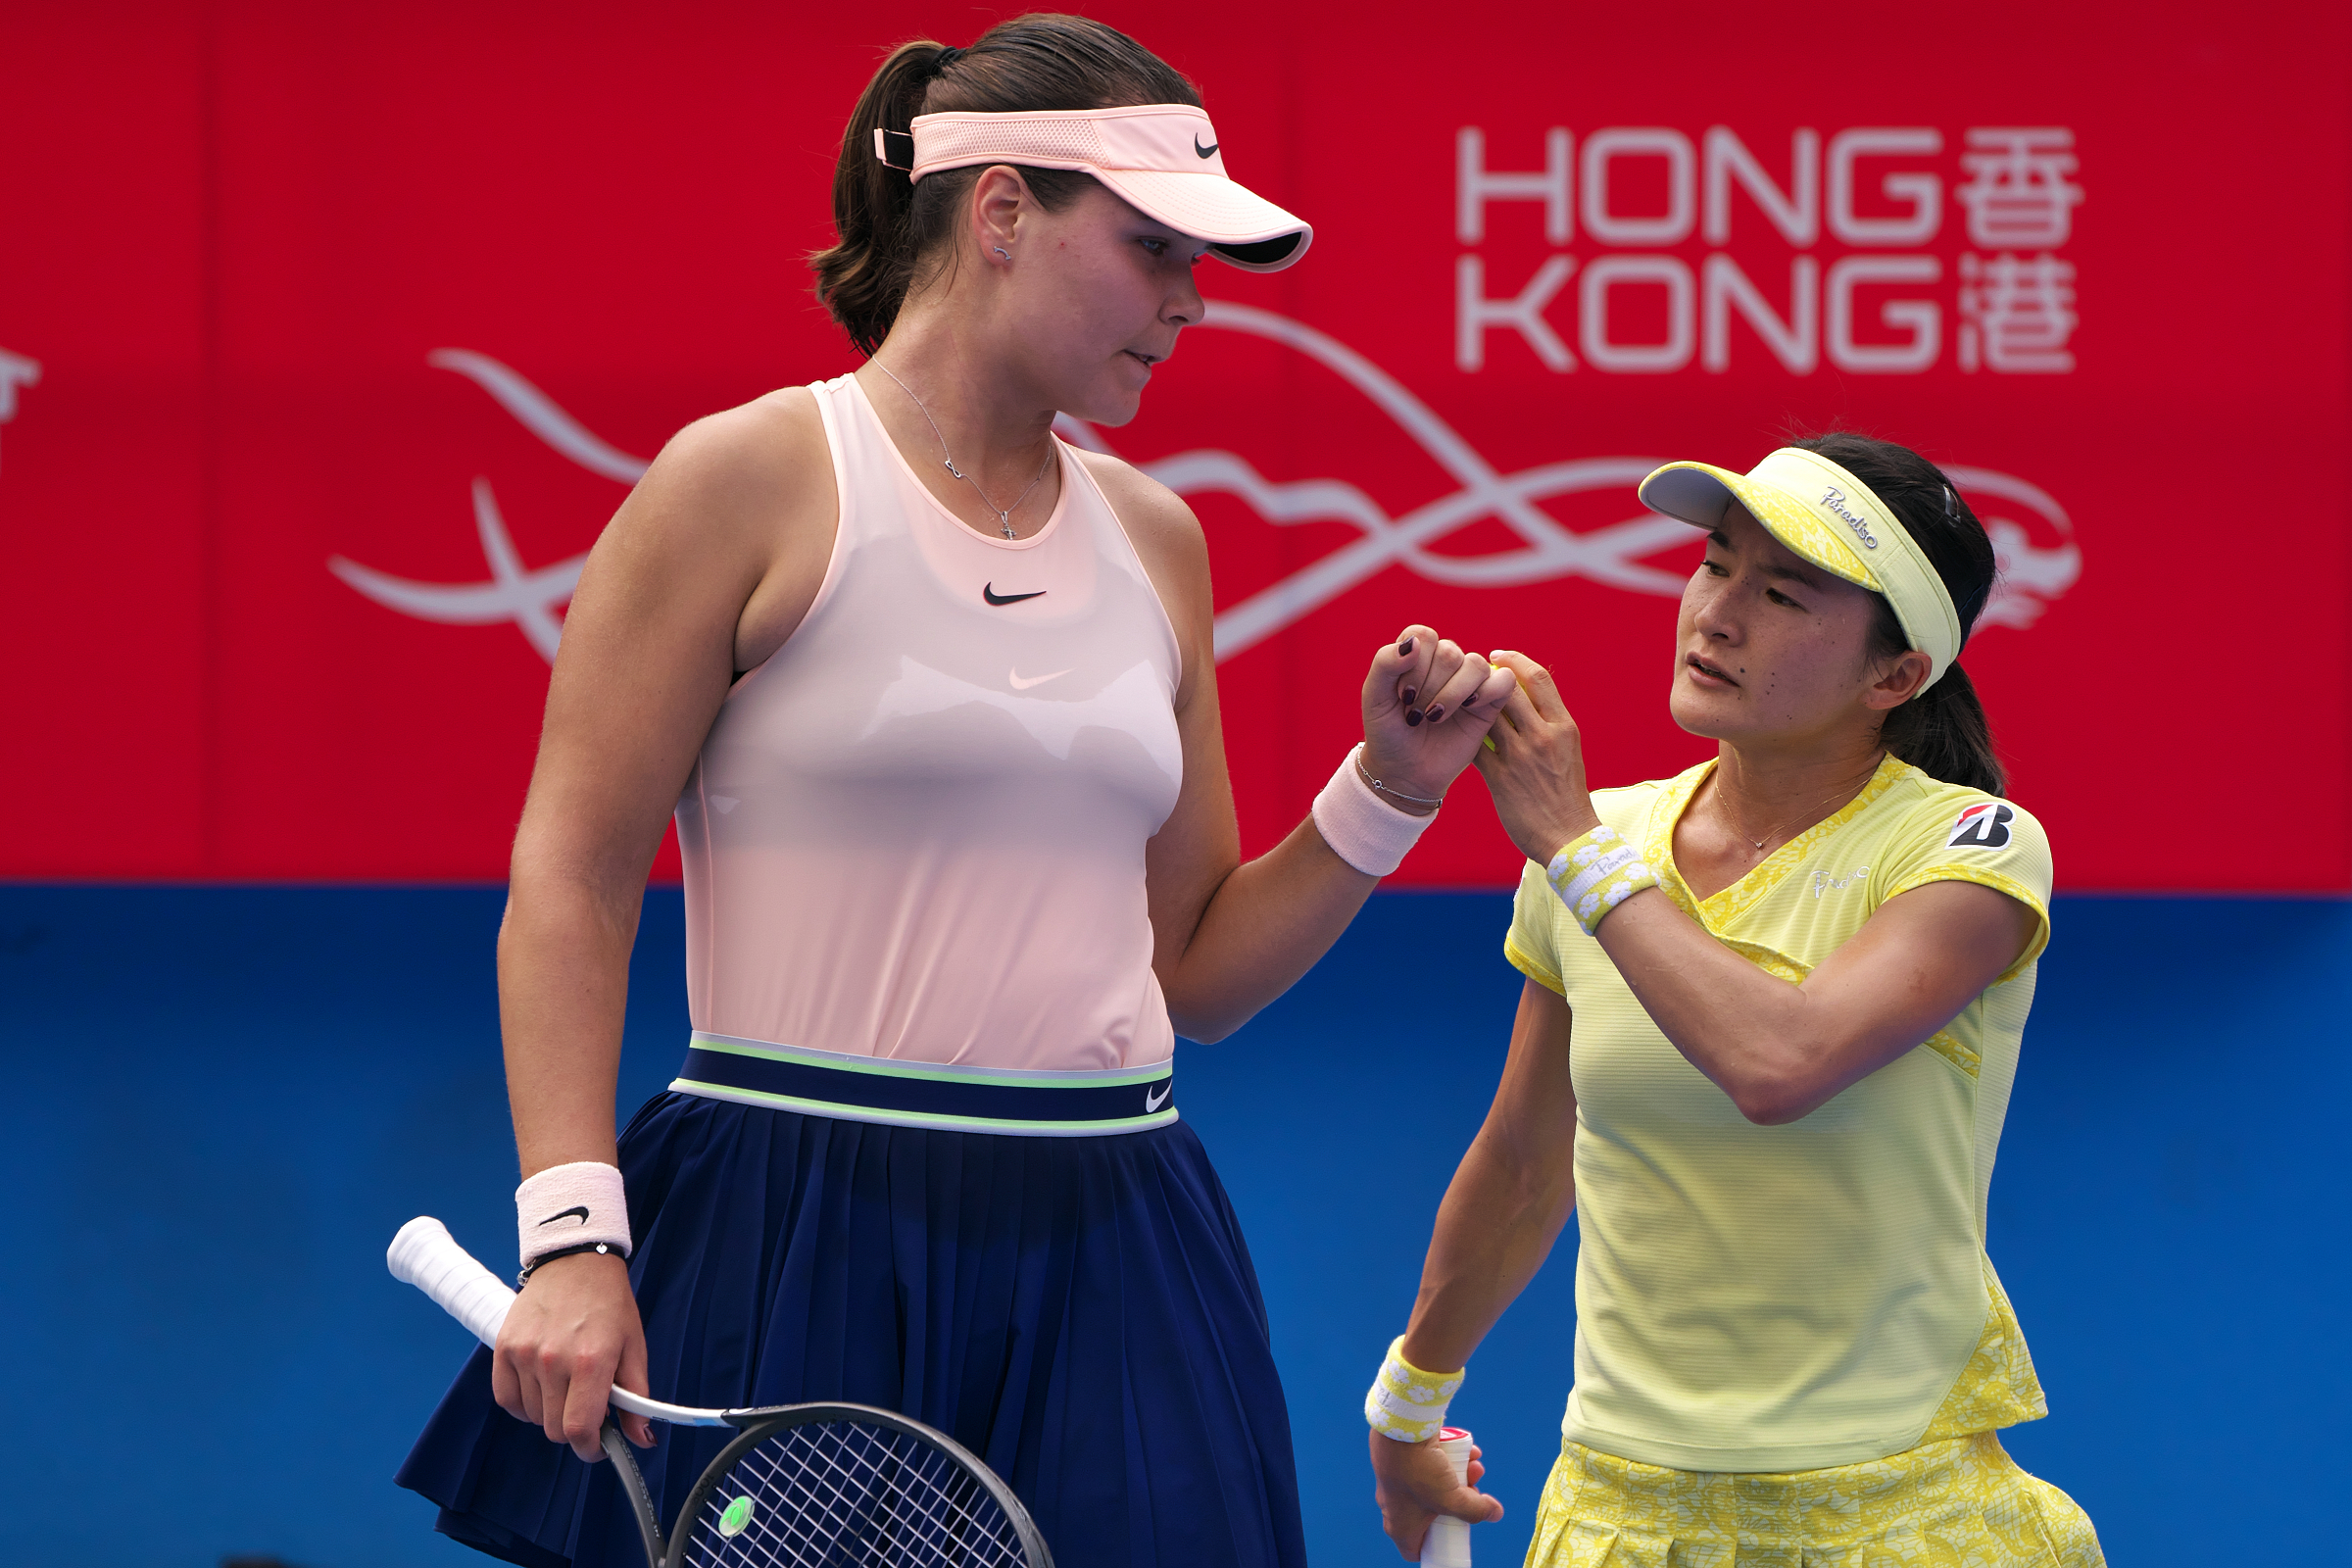 Daily Round Up 14 Oct Prudential Hong Kong Tennis Open 2019